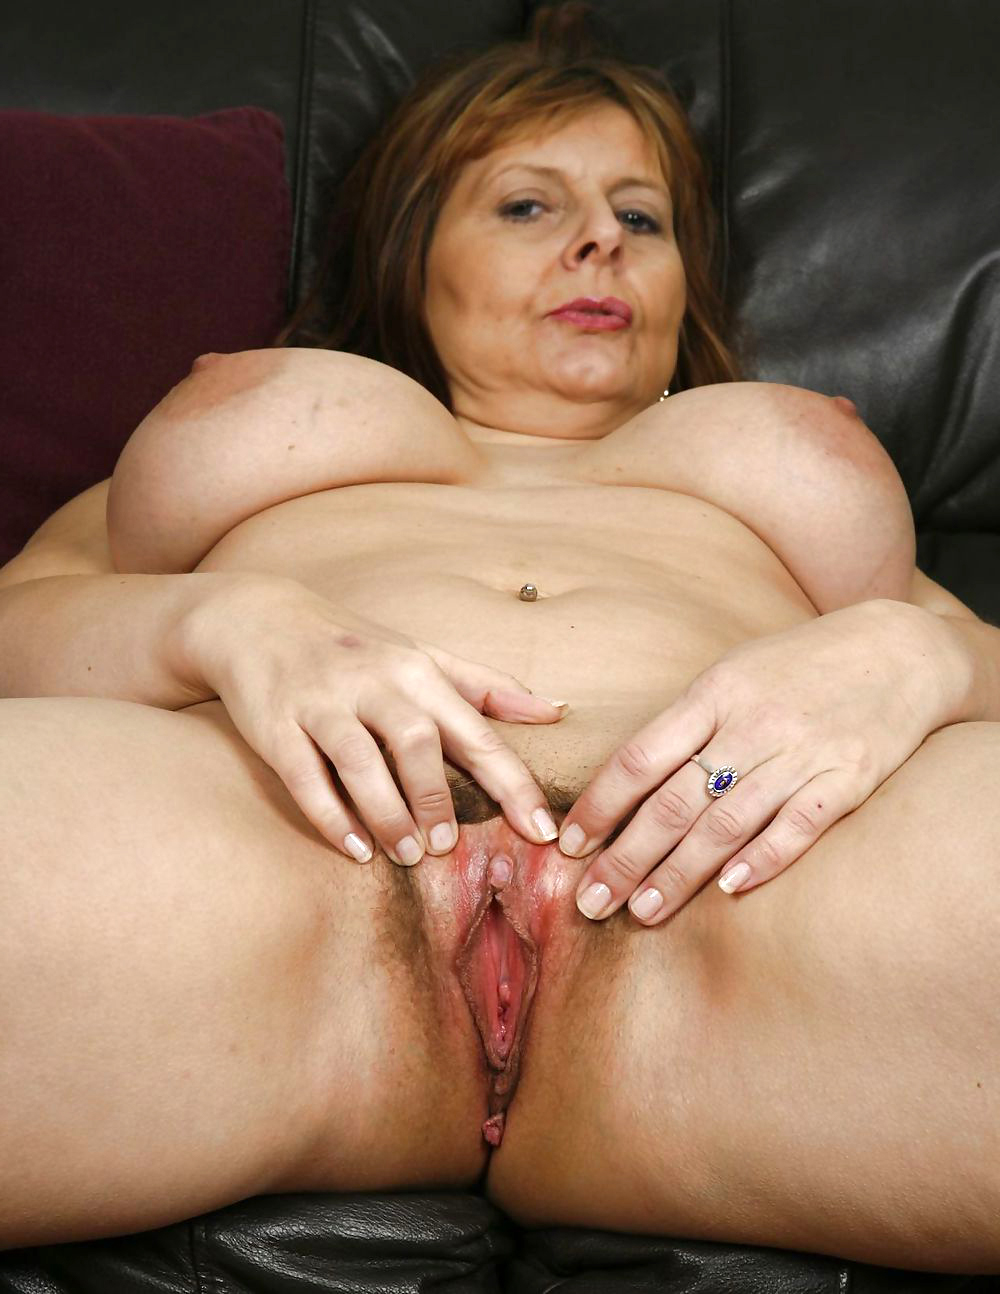 large natural nude woman